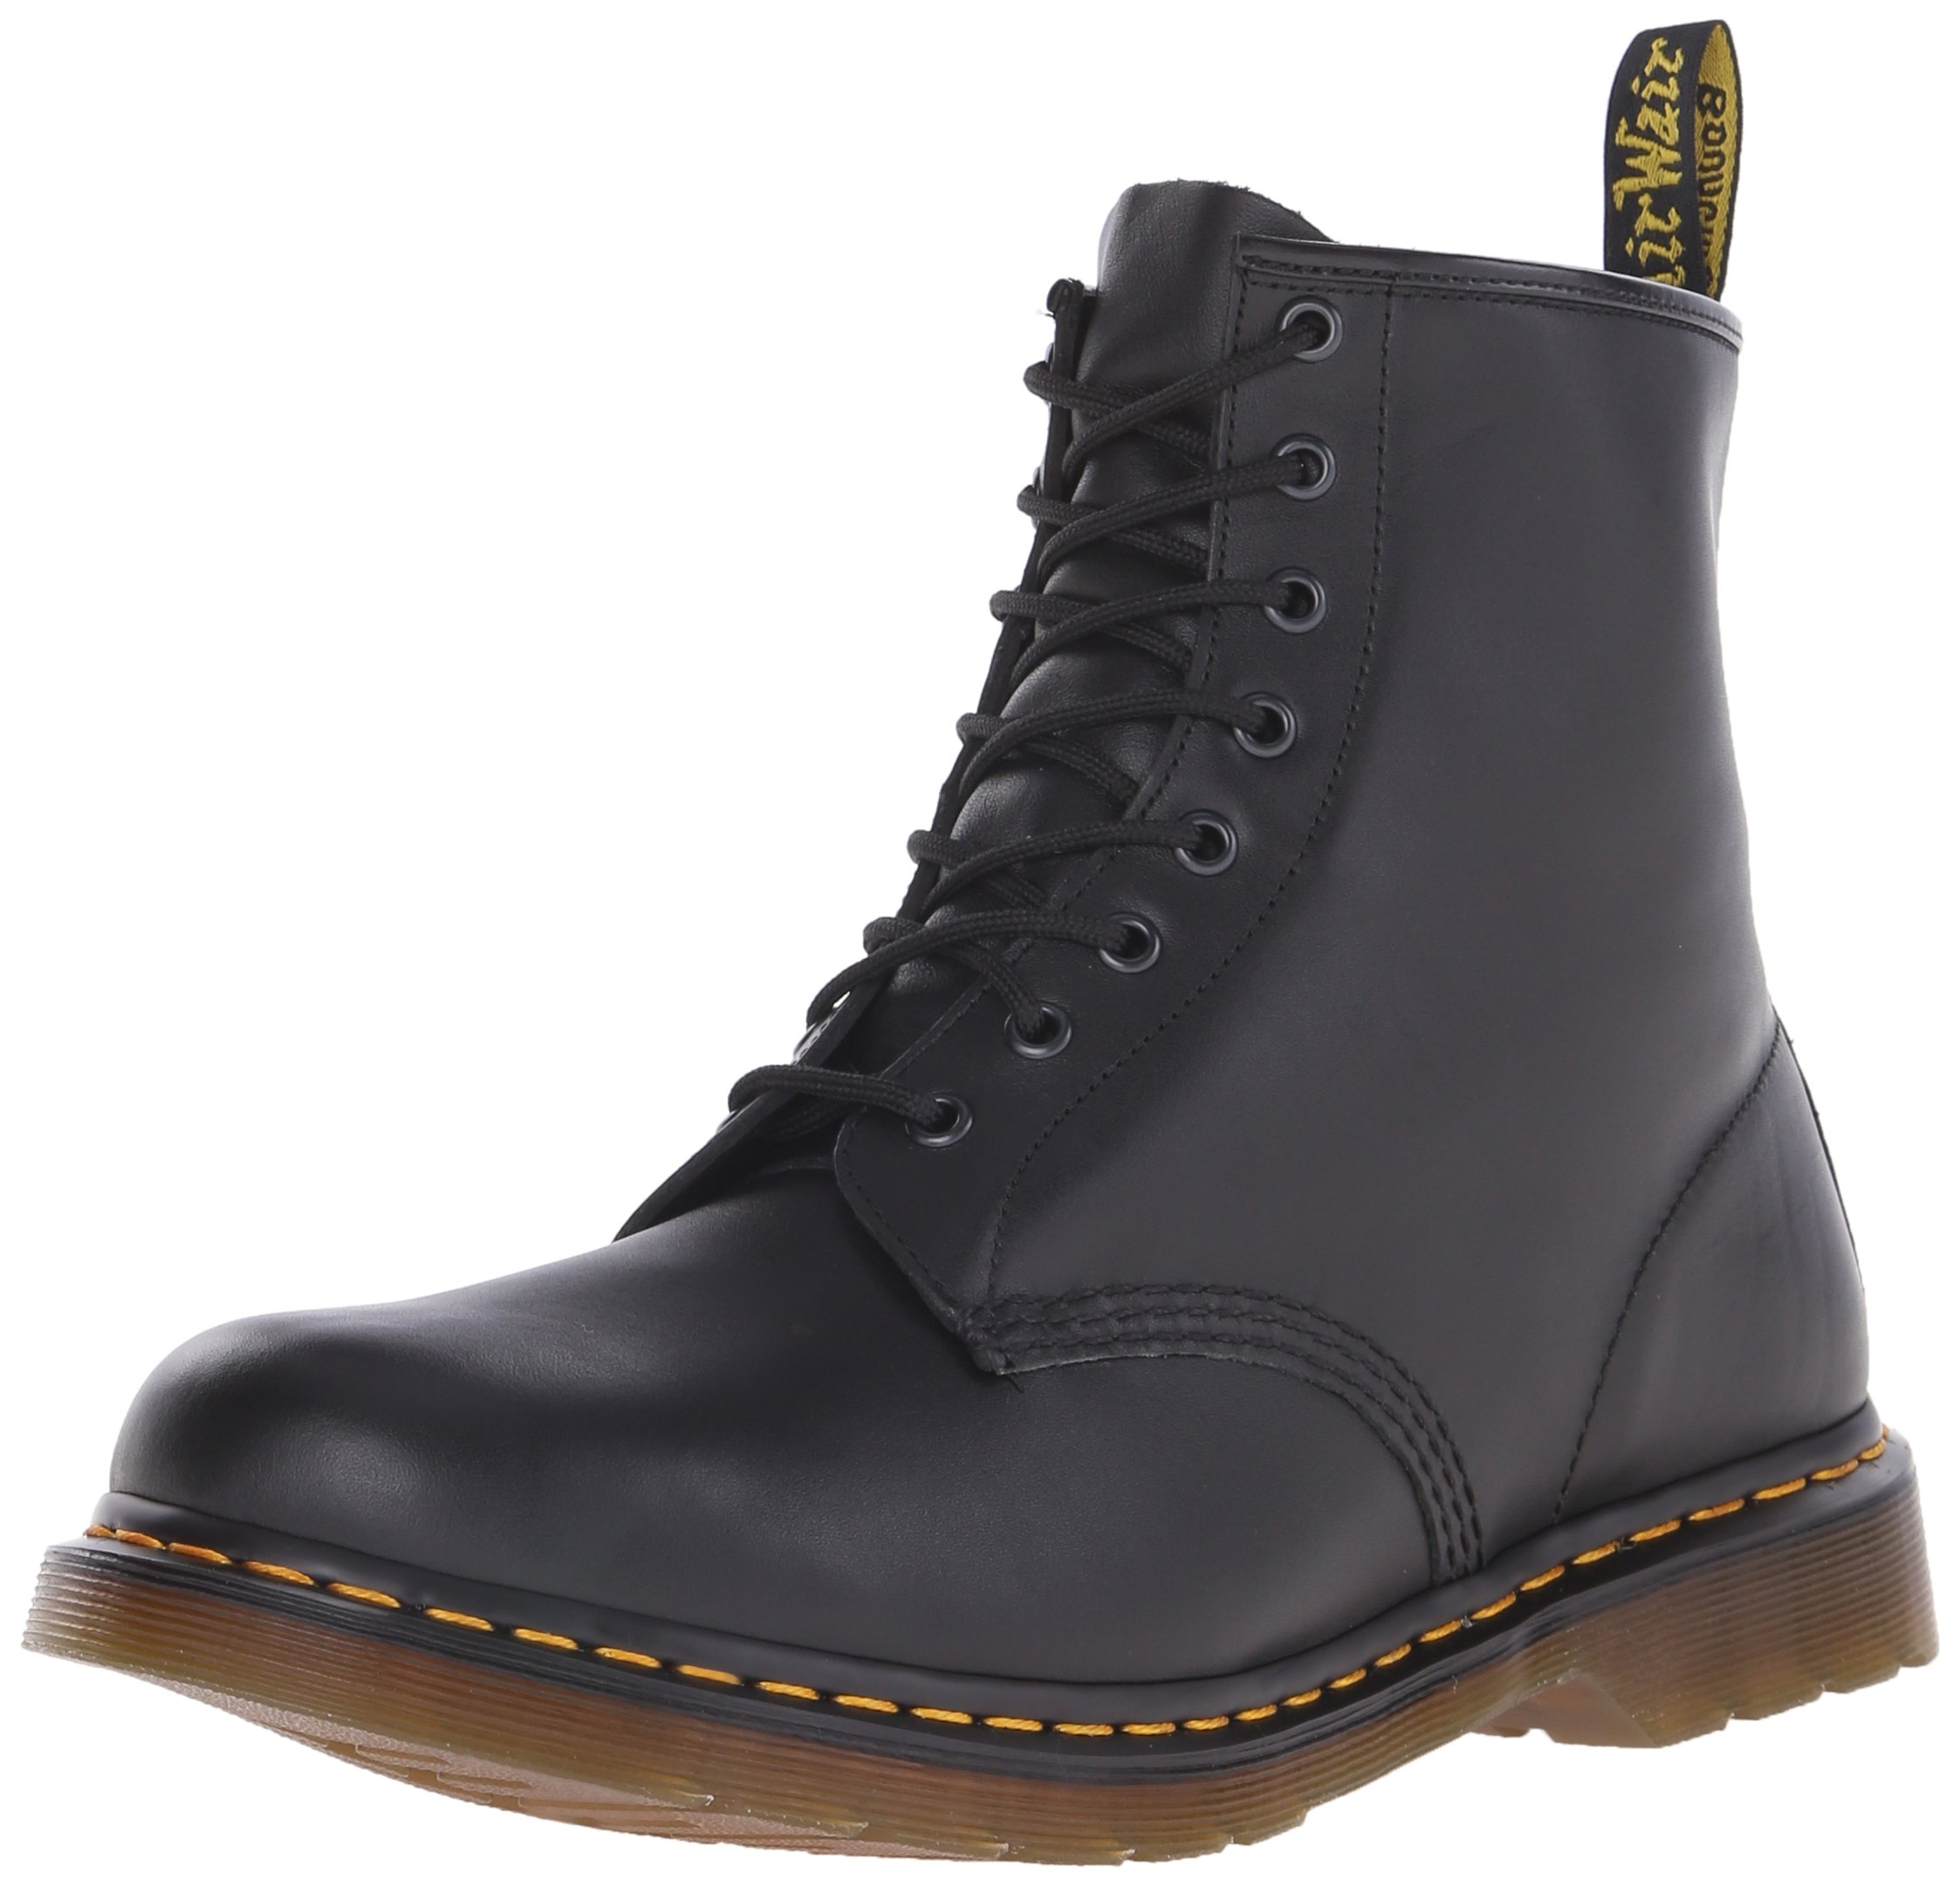 Dr. Martens Men's 1460 Re-Invented 8 Eye Lace Up Boot,Black Nappa Leather,8 UK (9 M US Mens)